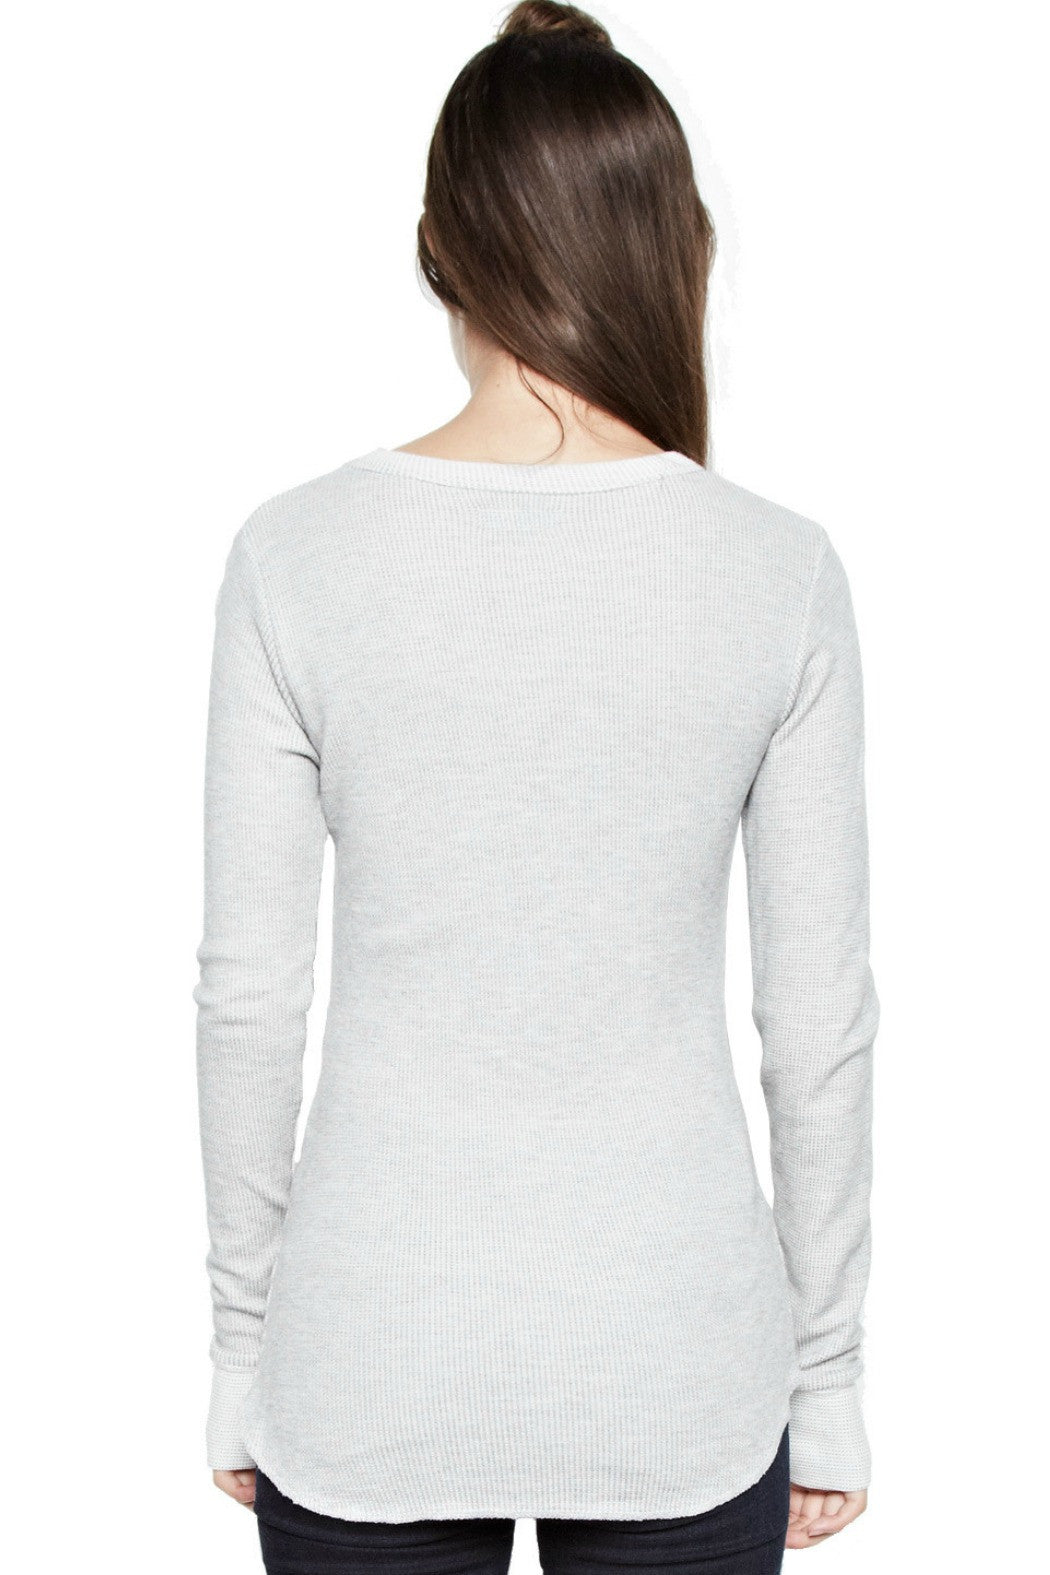 Alick LS fitted thumbhole tee - R+D Hipster Emporium | Womens & Mens Clothing - 4